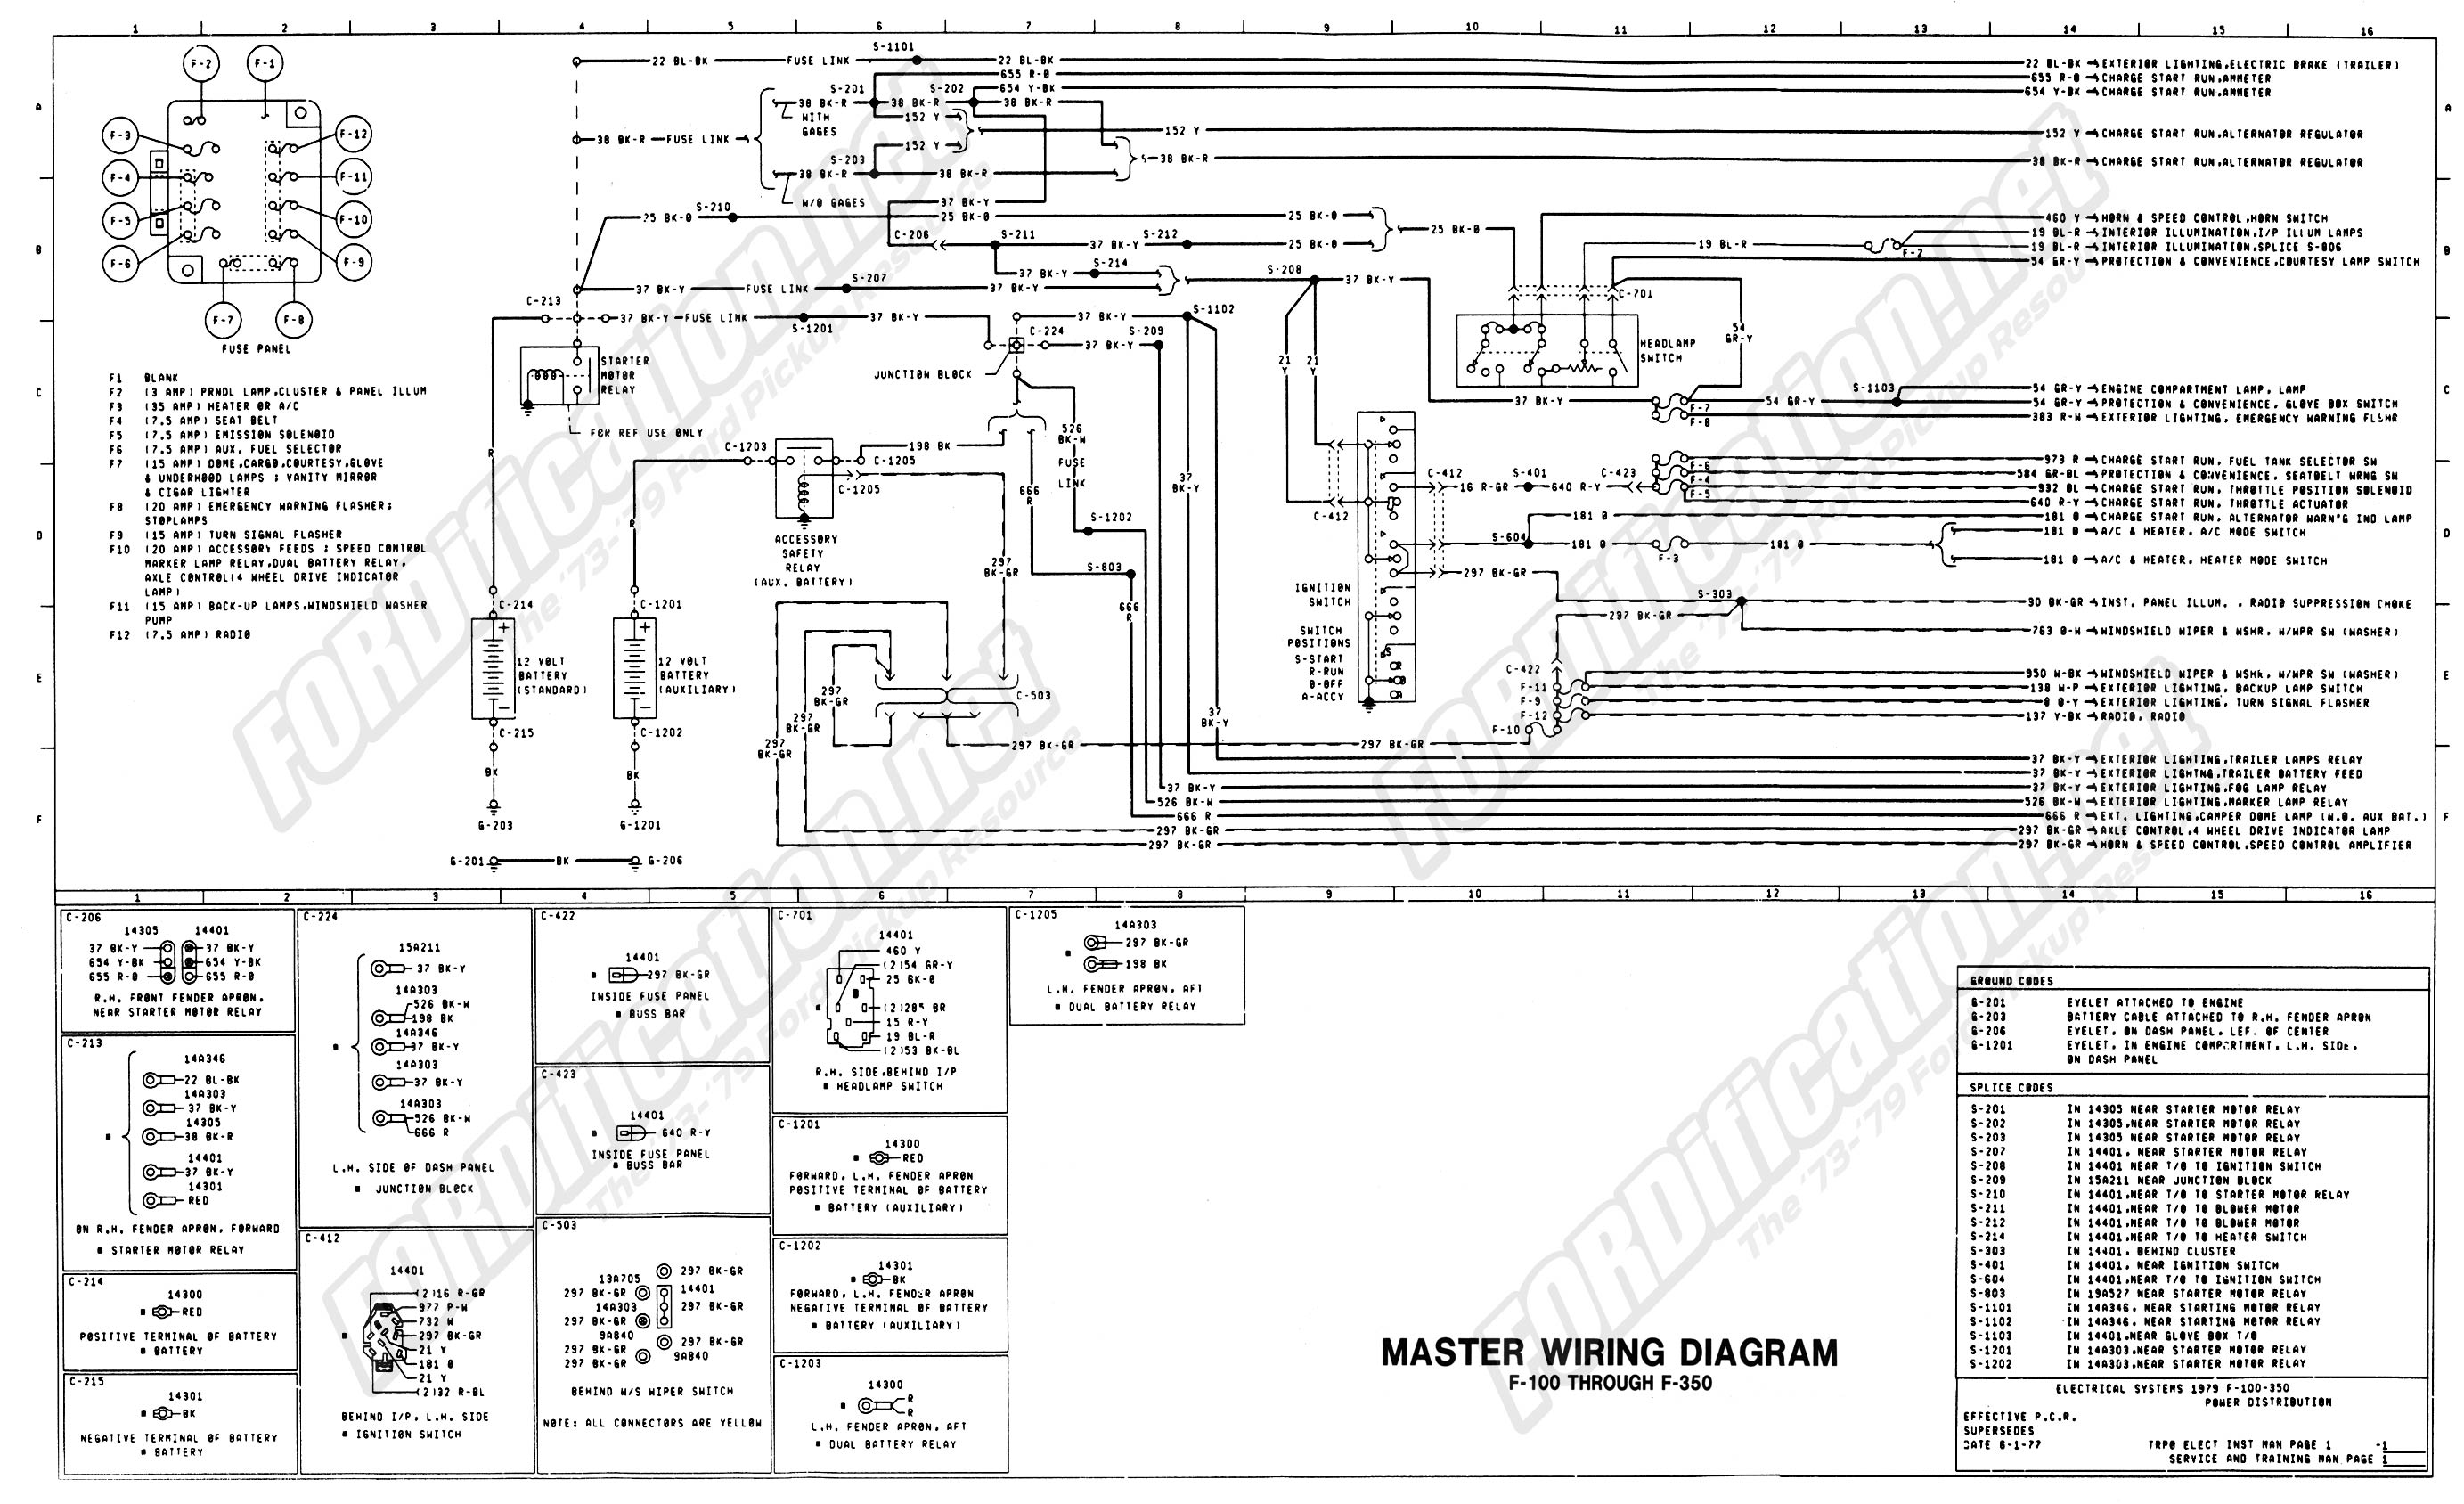 wiring_79master_1of9 1973 1979 ford truck wiring diagrams & schematics fordification net  at mifinder.co